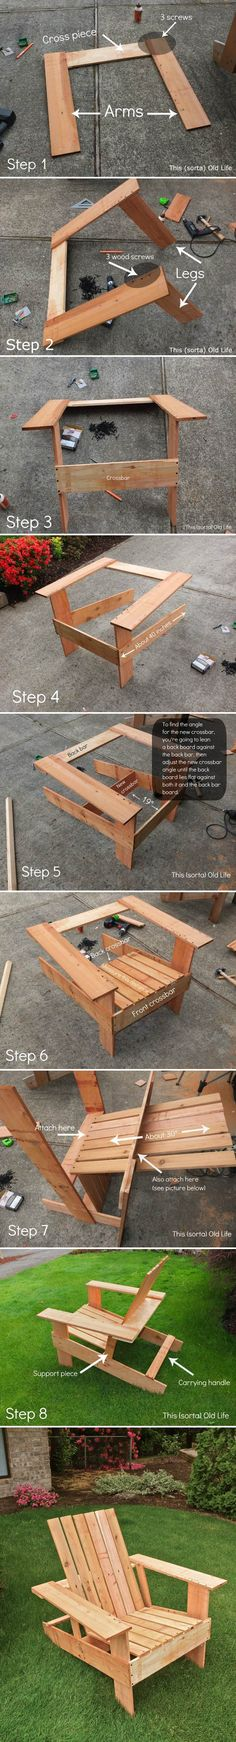 DIY Adirondack Chair Tutorial ***Repinned by Normoe, the Backyard Guy (#1 backyardguy on Earth) Follow us on; http://twitter.com/backyardguy